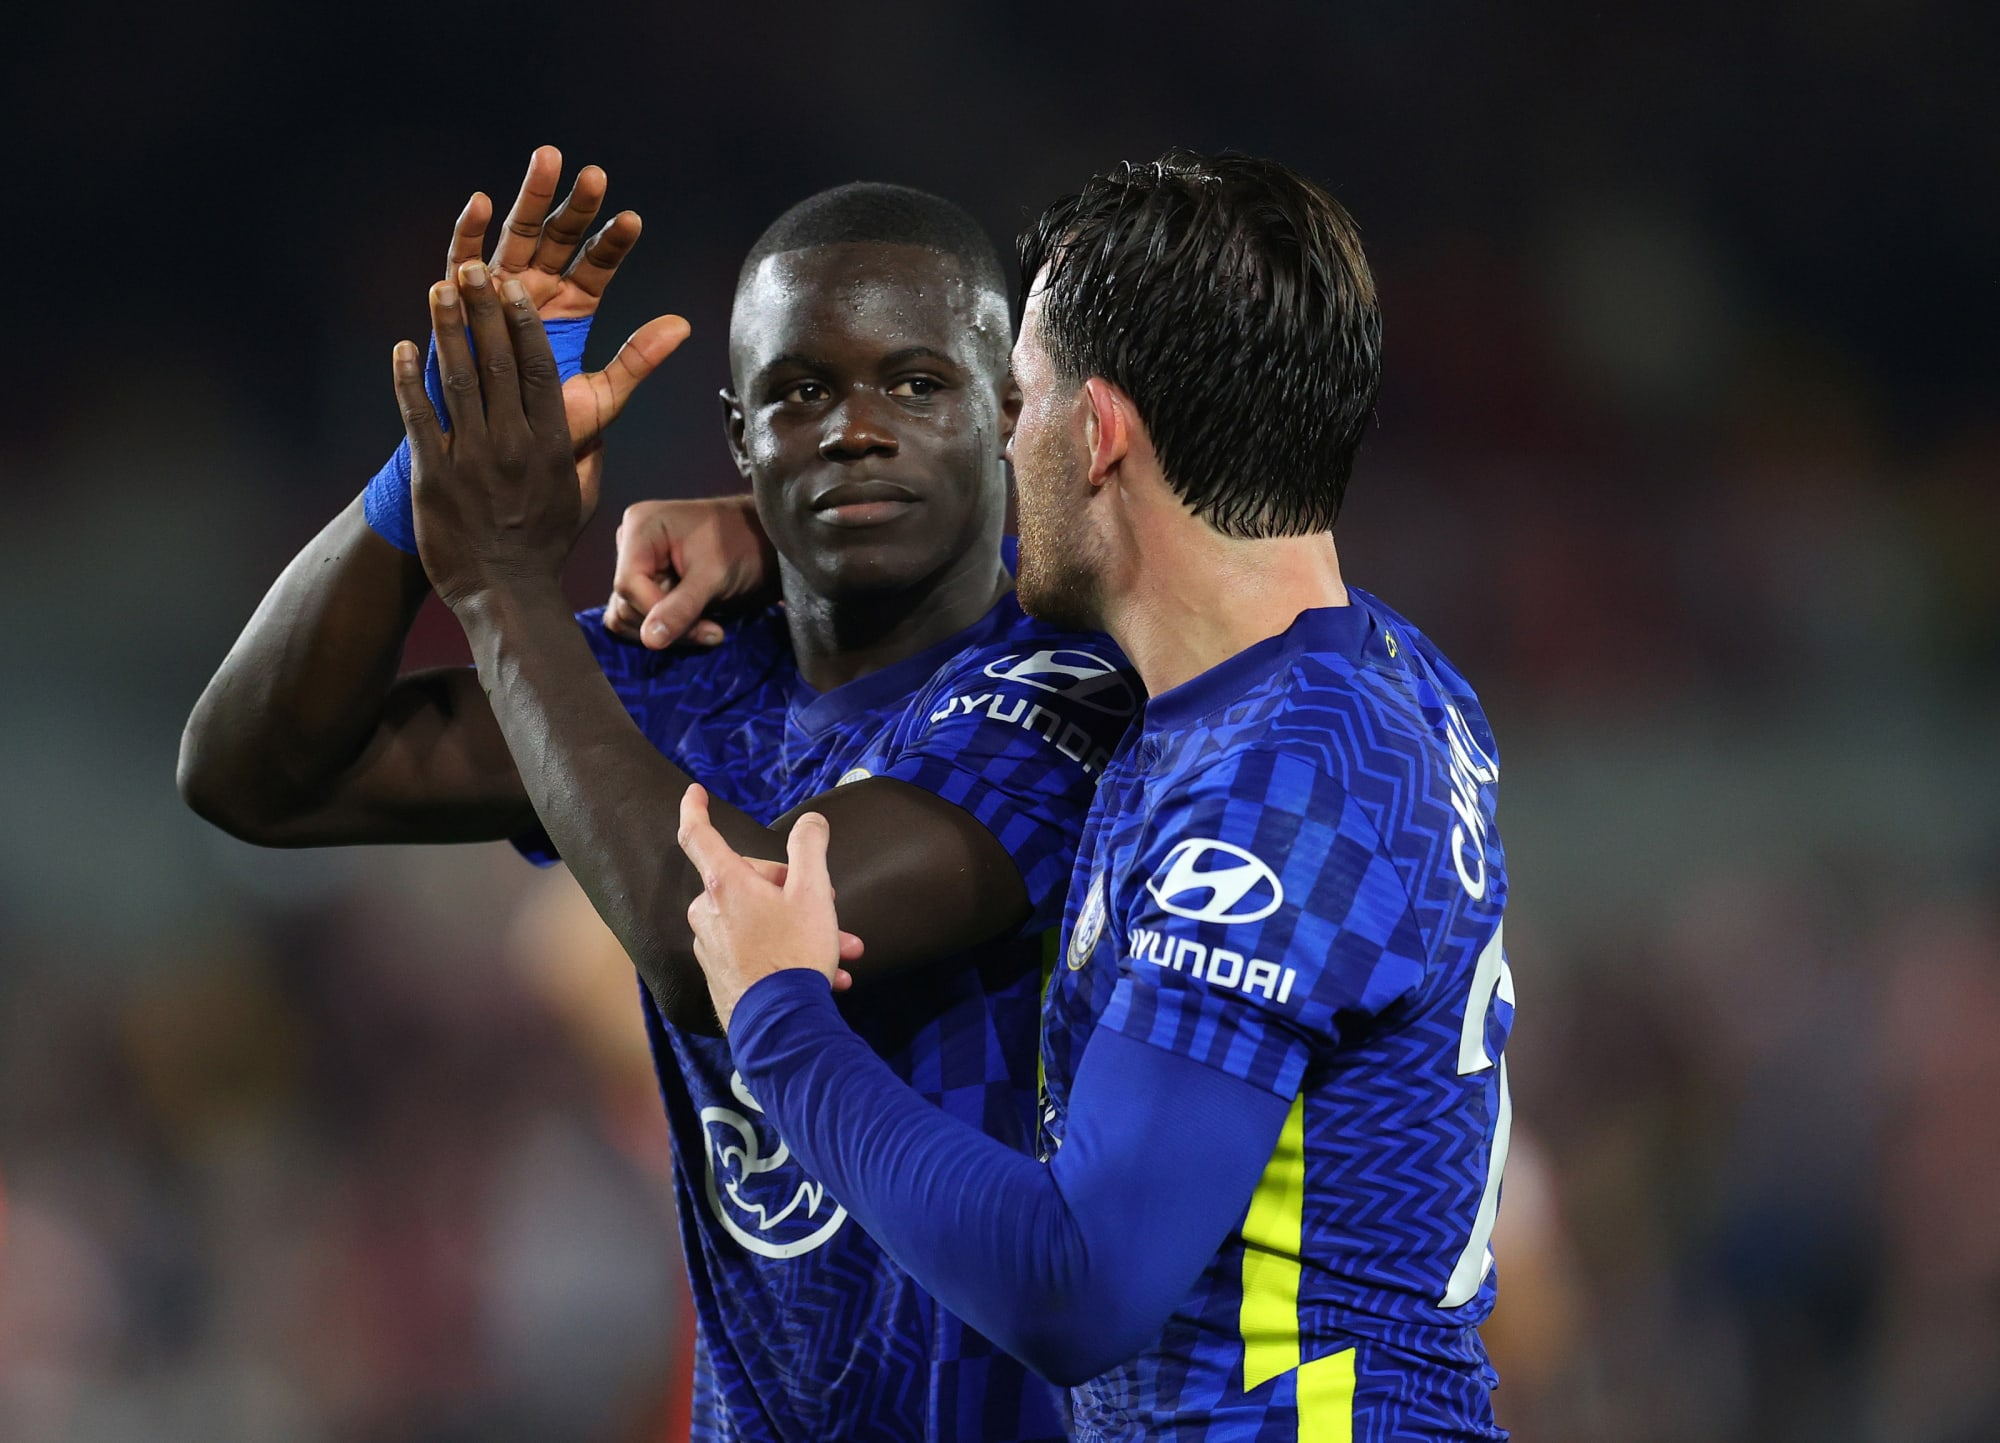 Does many Chelsea goal scorers correlate to success this season?